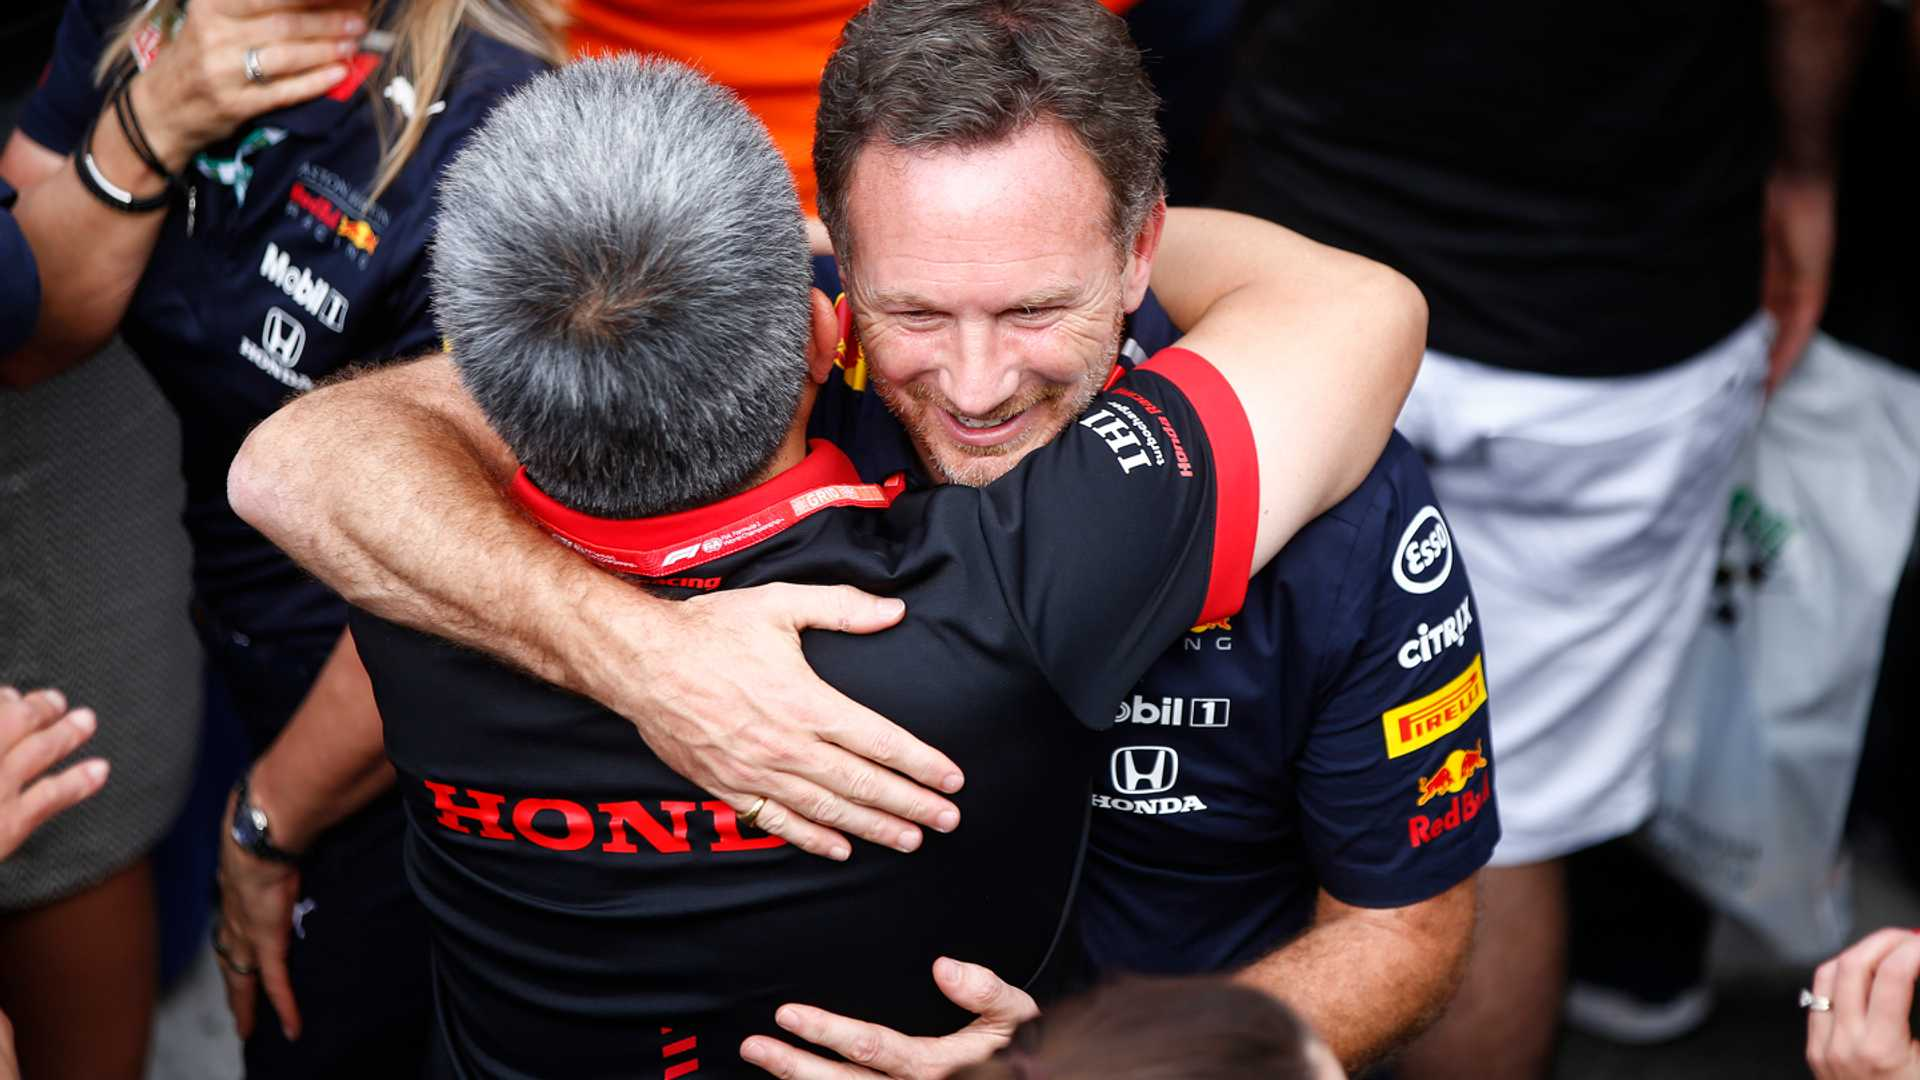 Honda hitting targets key to building Red Bull trust